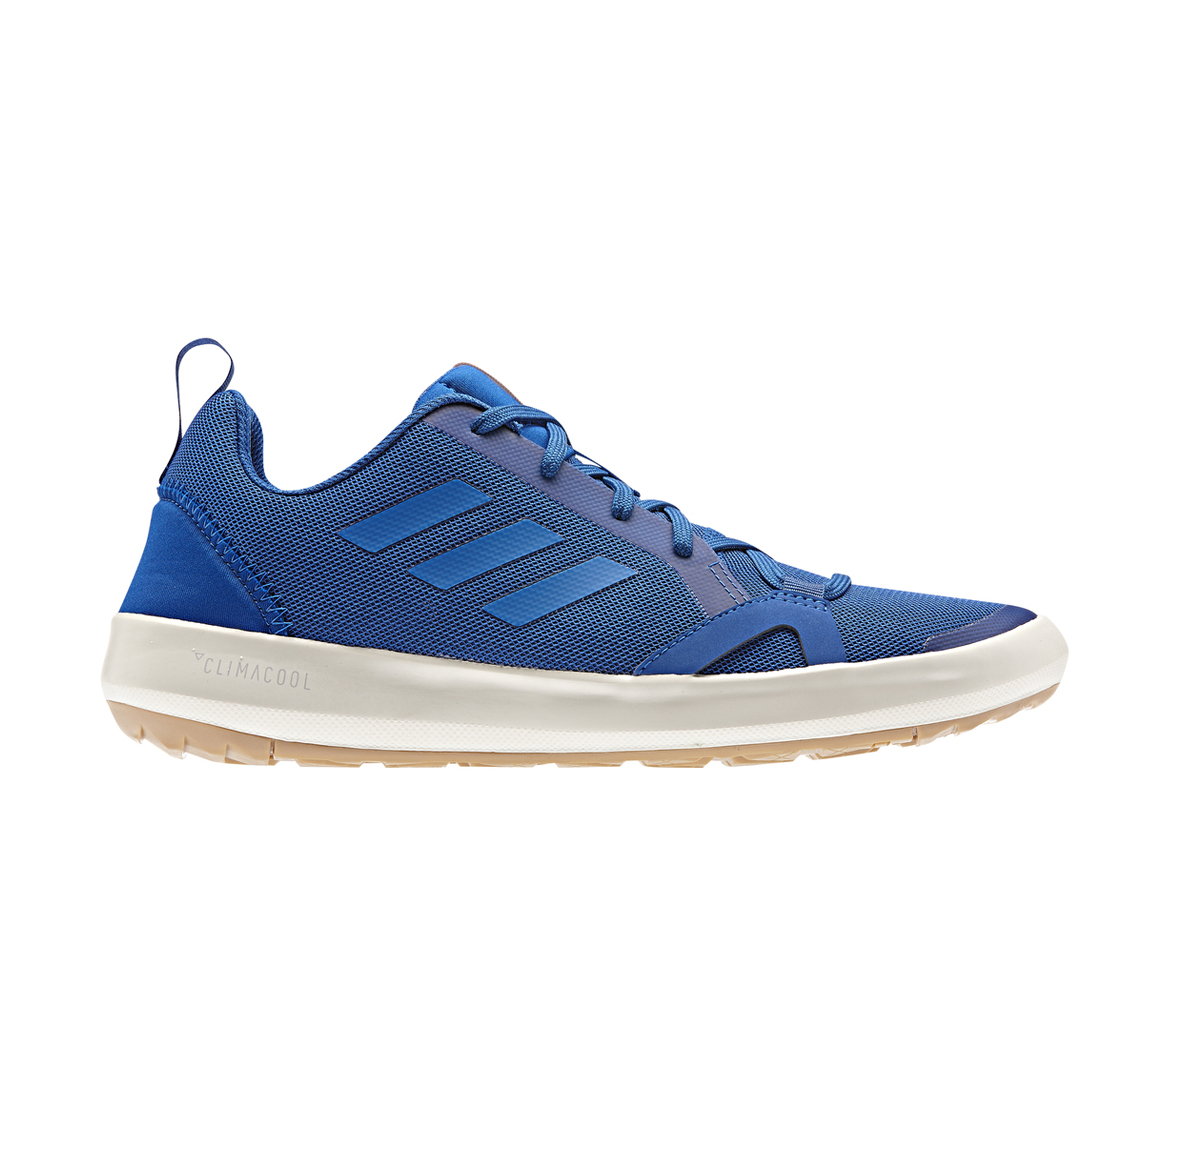 outlet store 55514 fbea2 Adidas Outdoor Terrex CC BOAT - Mens